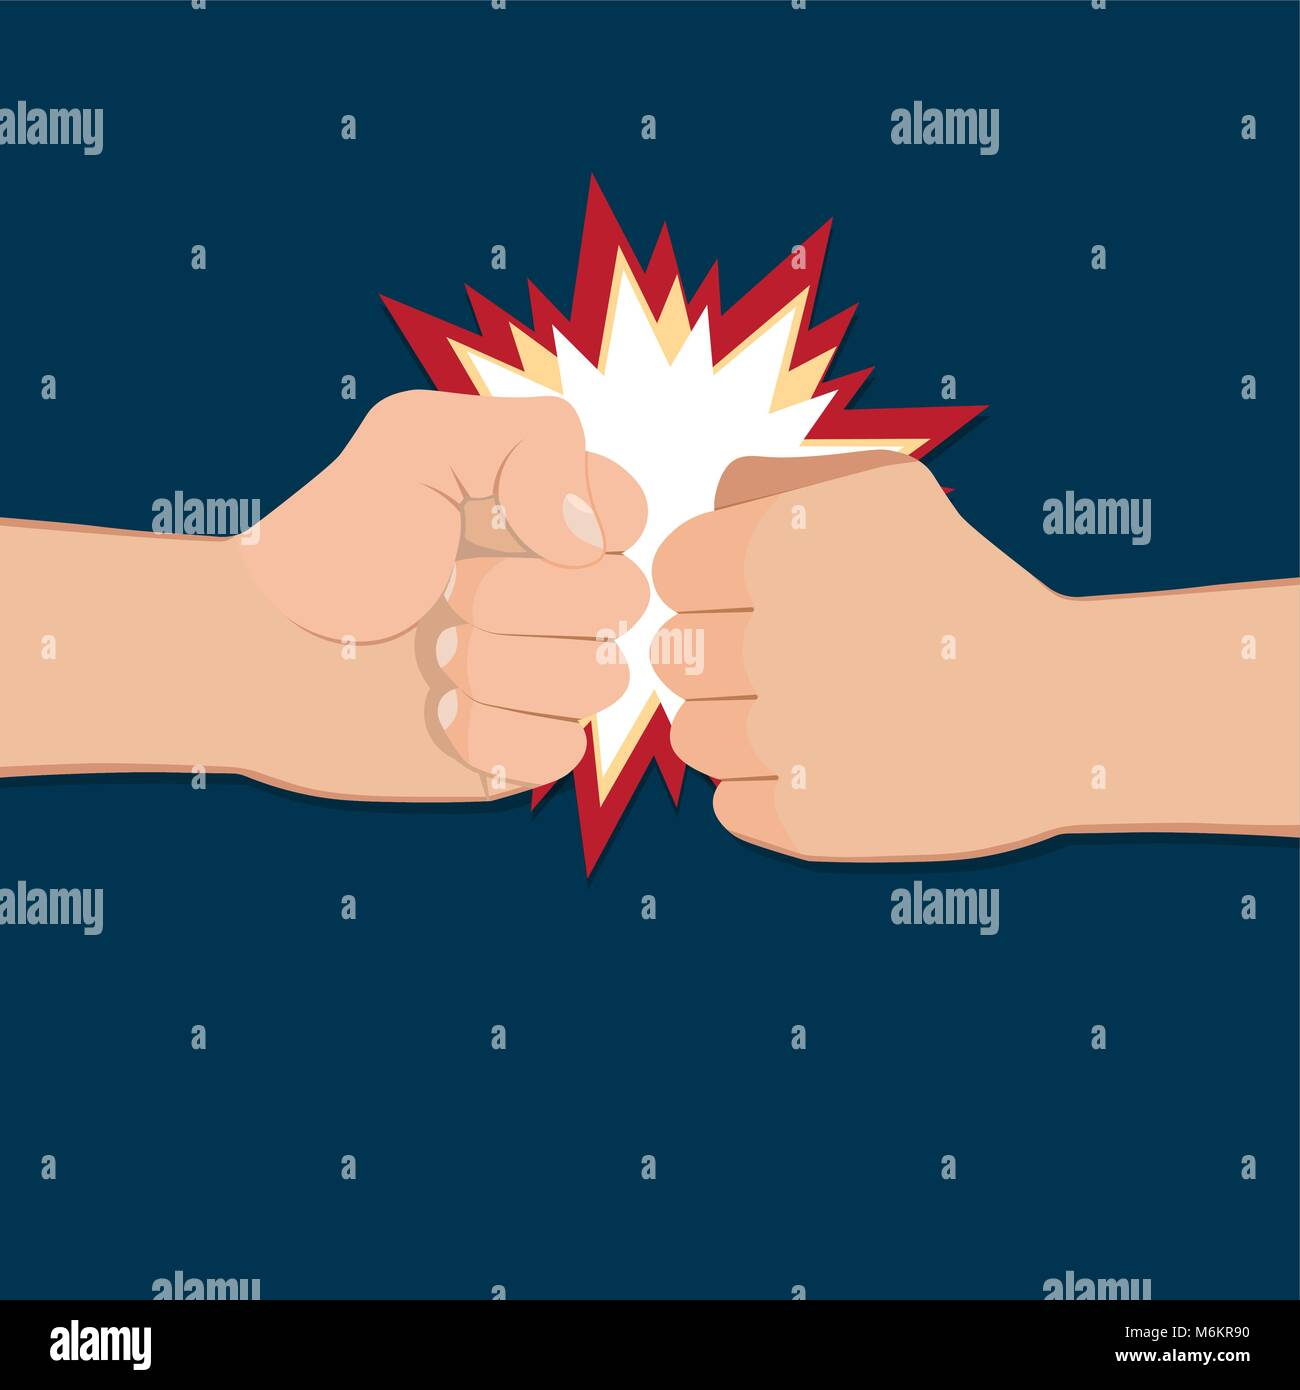 Two clenched fists in air punching. Vector illustration with two hands. Concept of aggression and violence. War - Stock Image